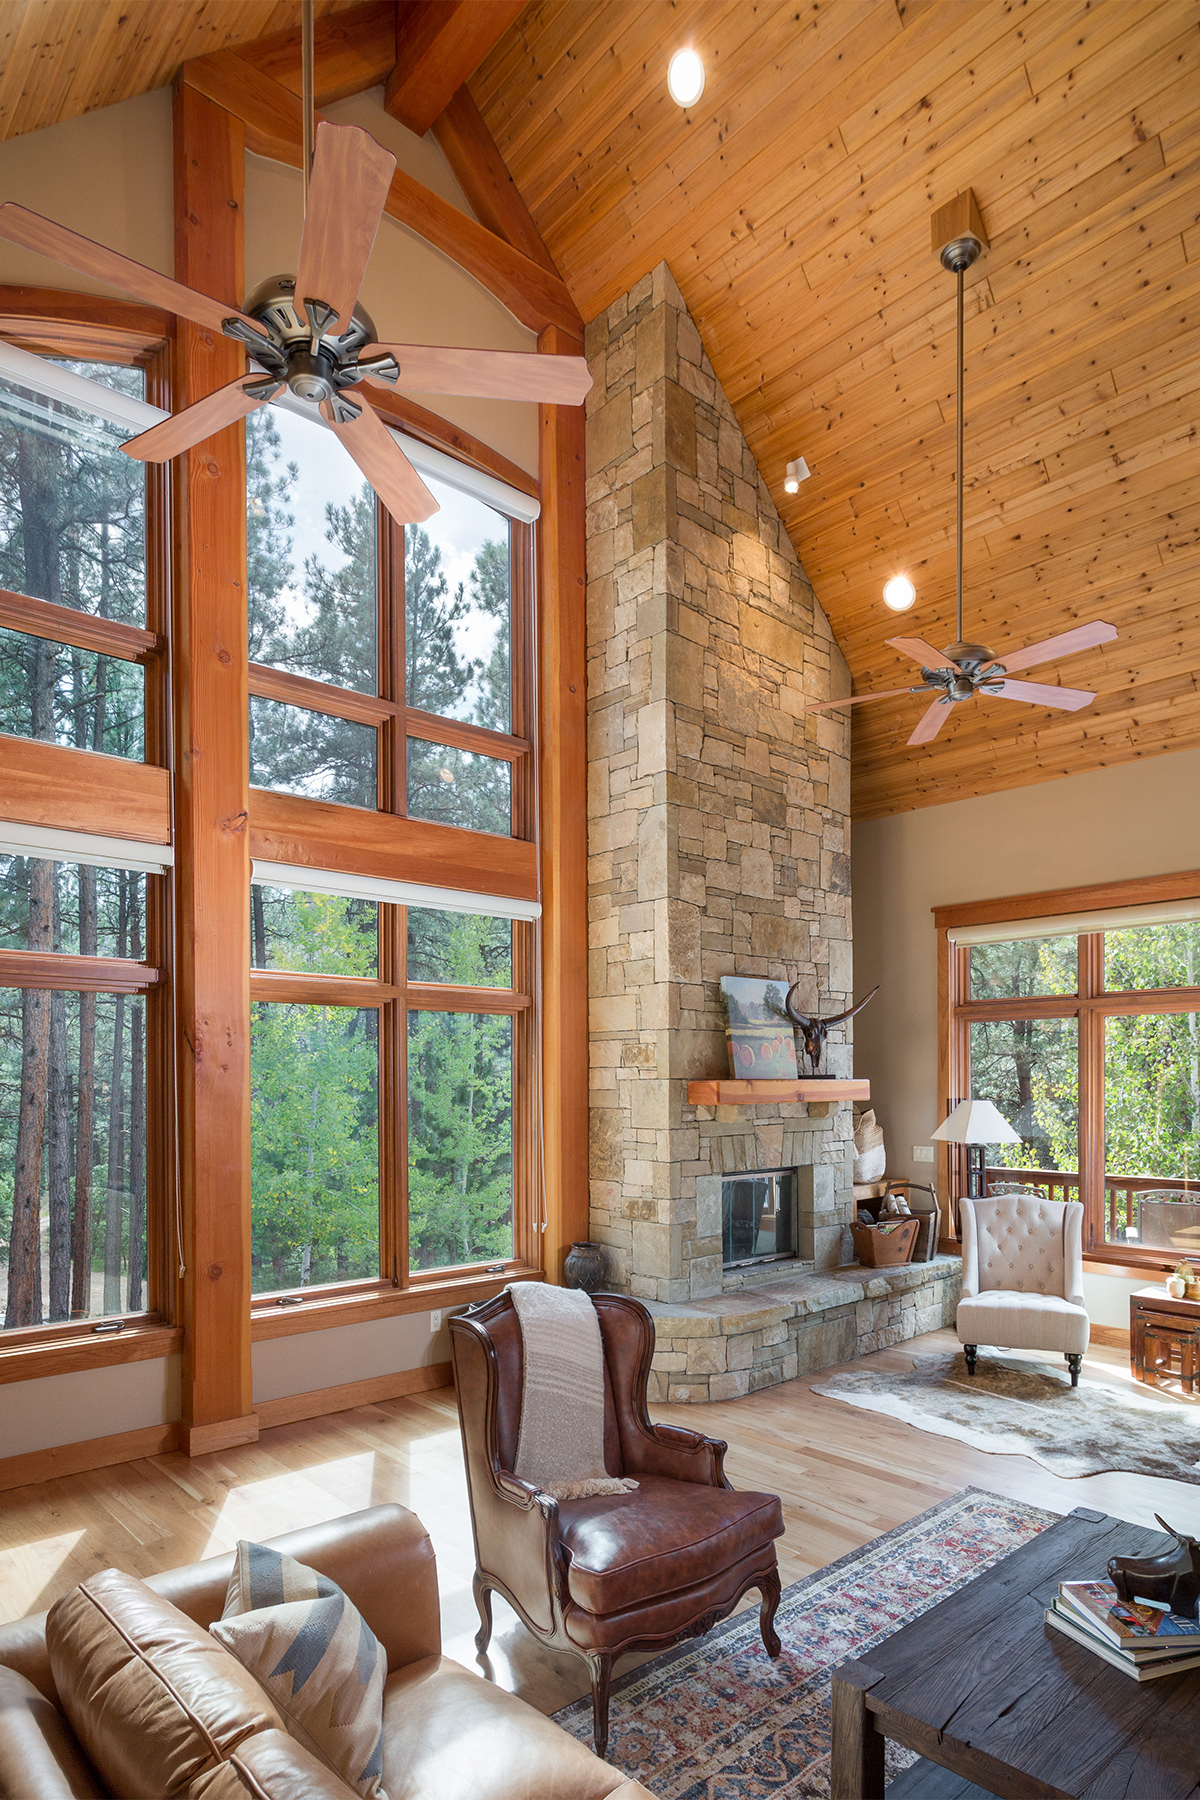 Additional photo for property listing at 260 Alpenglow 260 Alpenglow Durango, Colorado 81301 United States